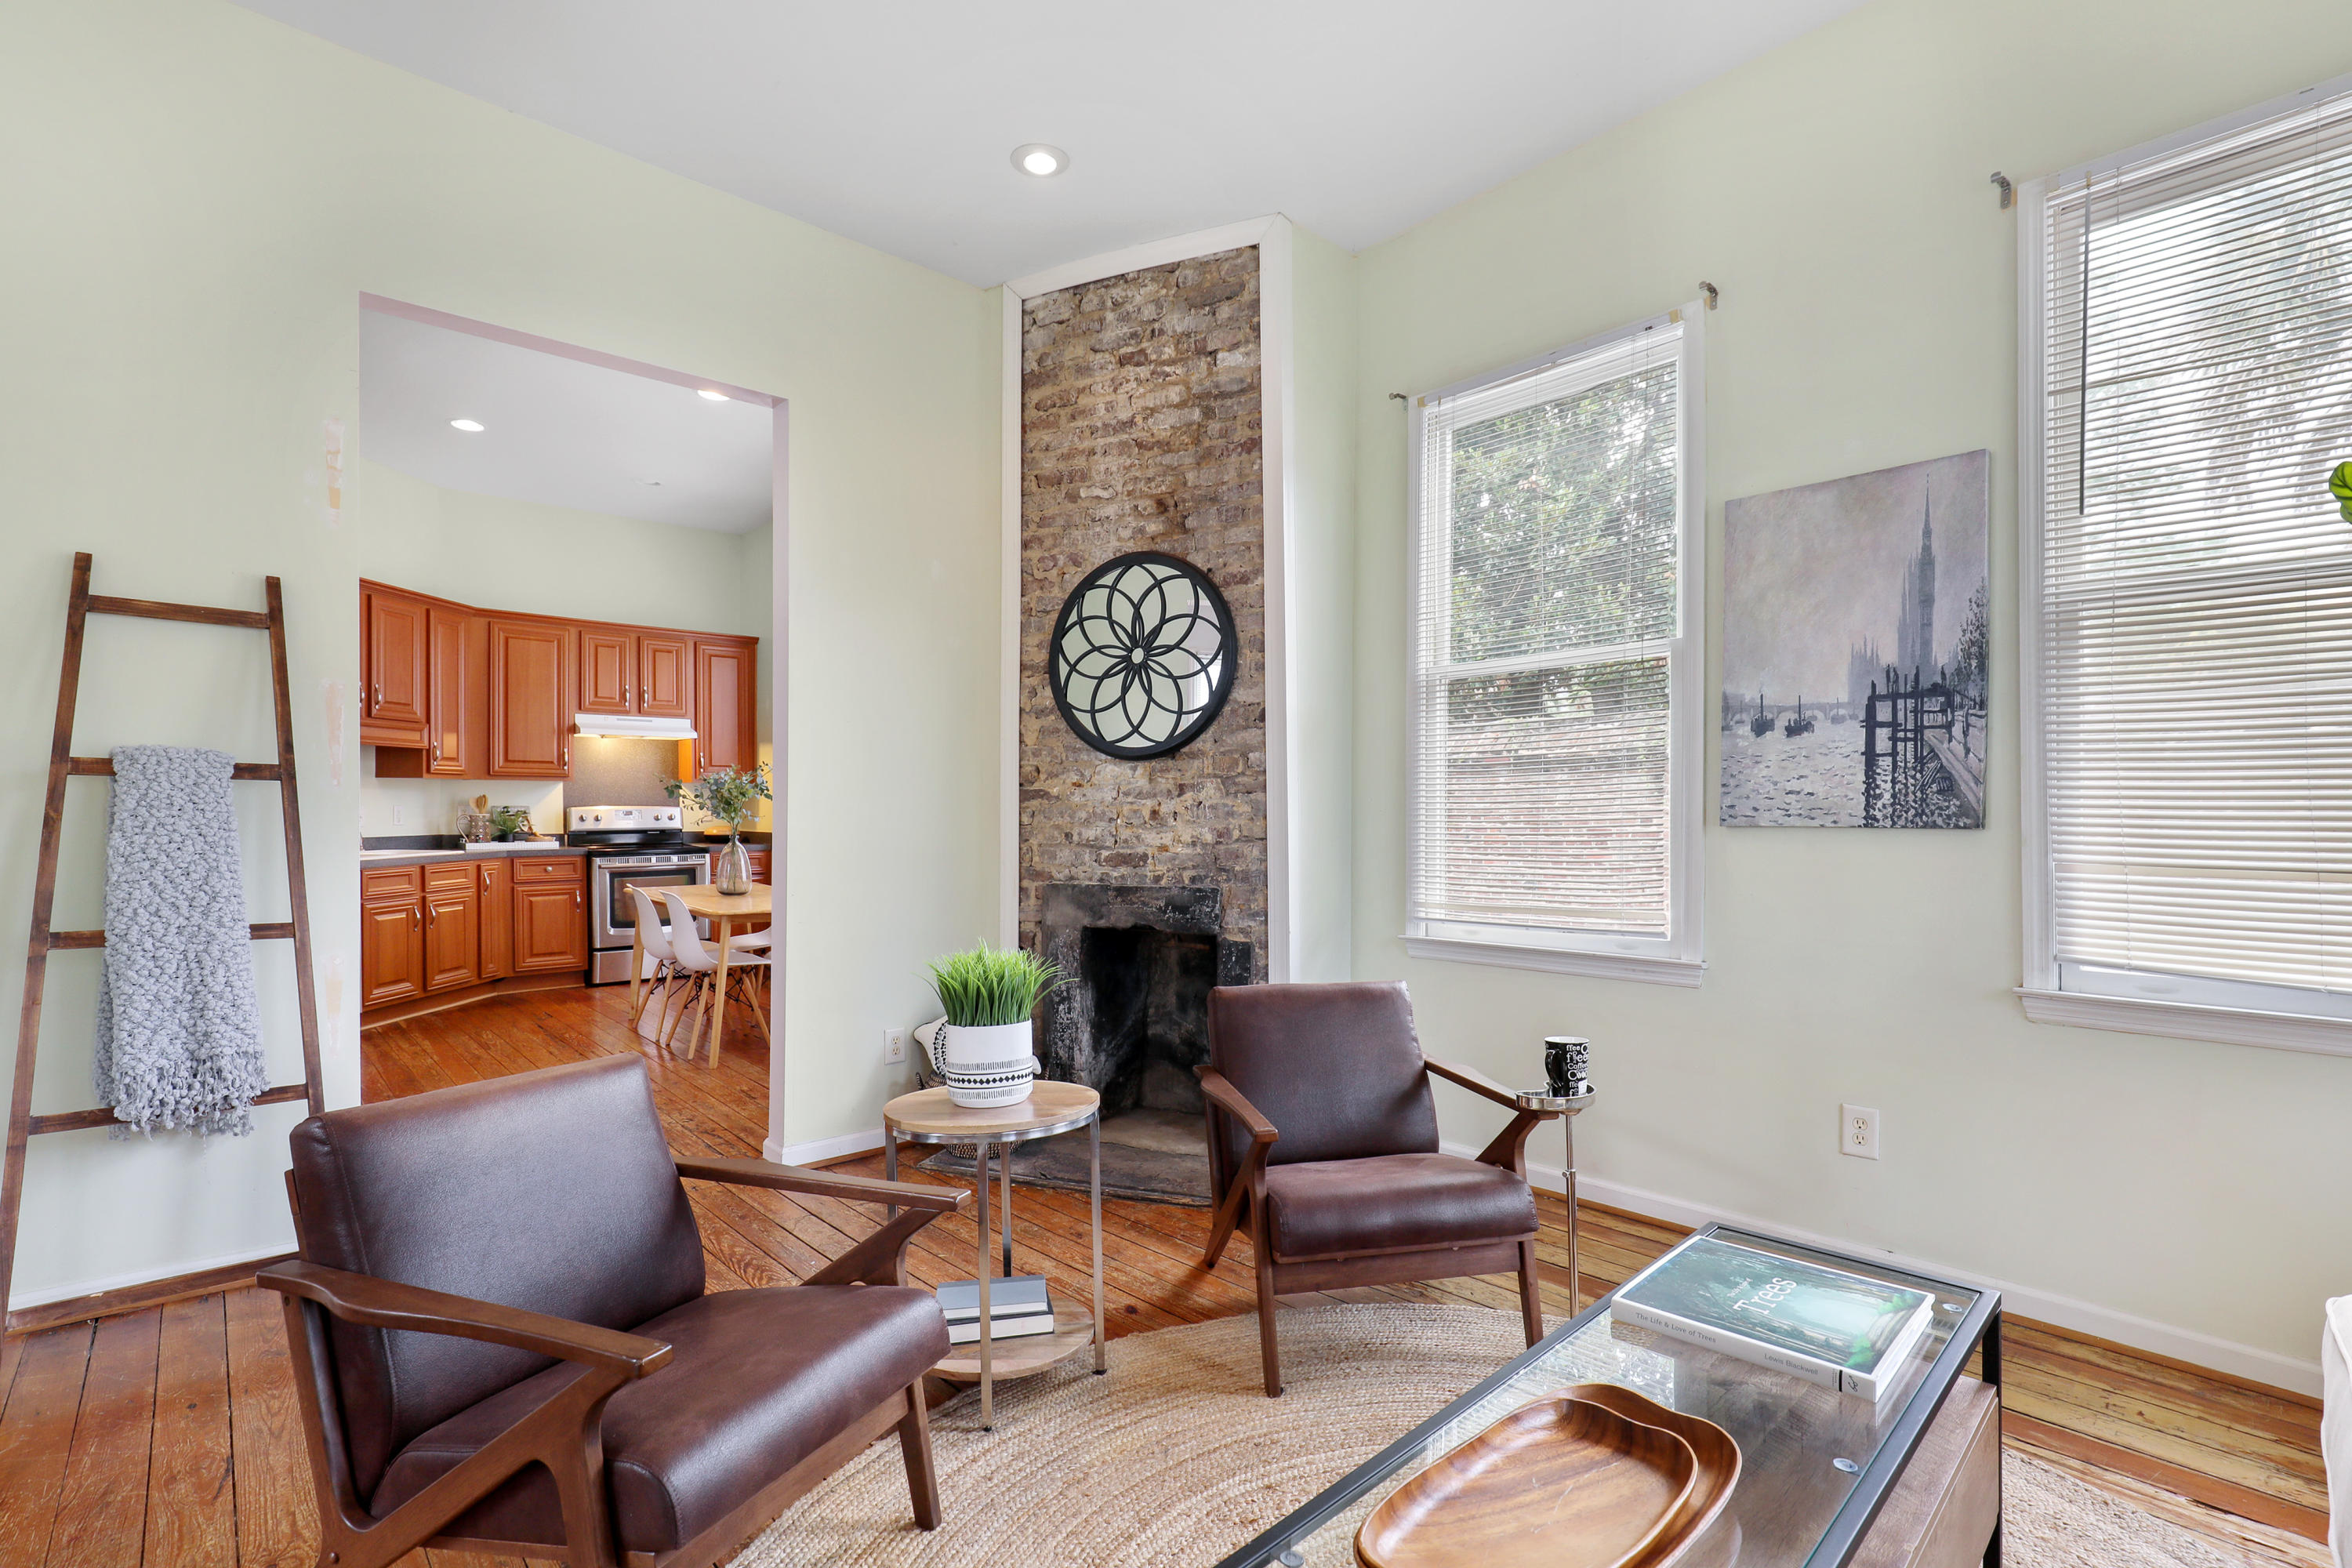 31 Mary Street, Charleston, 29403, ,MultiFamily,For Sale,Mary,21015821